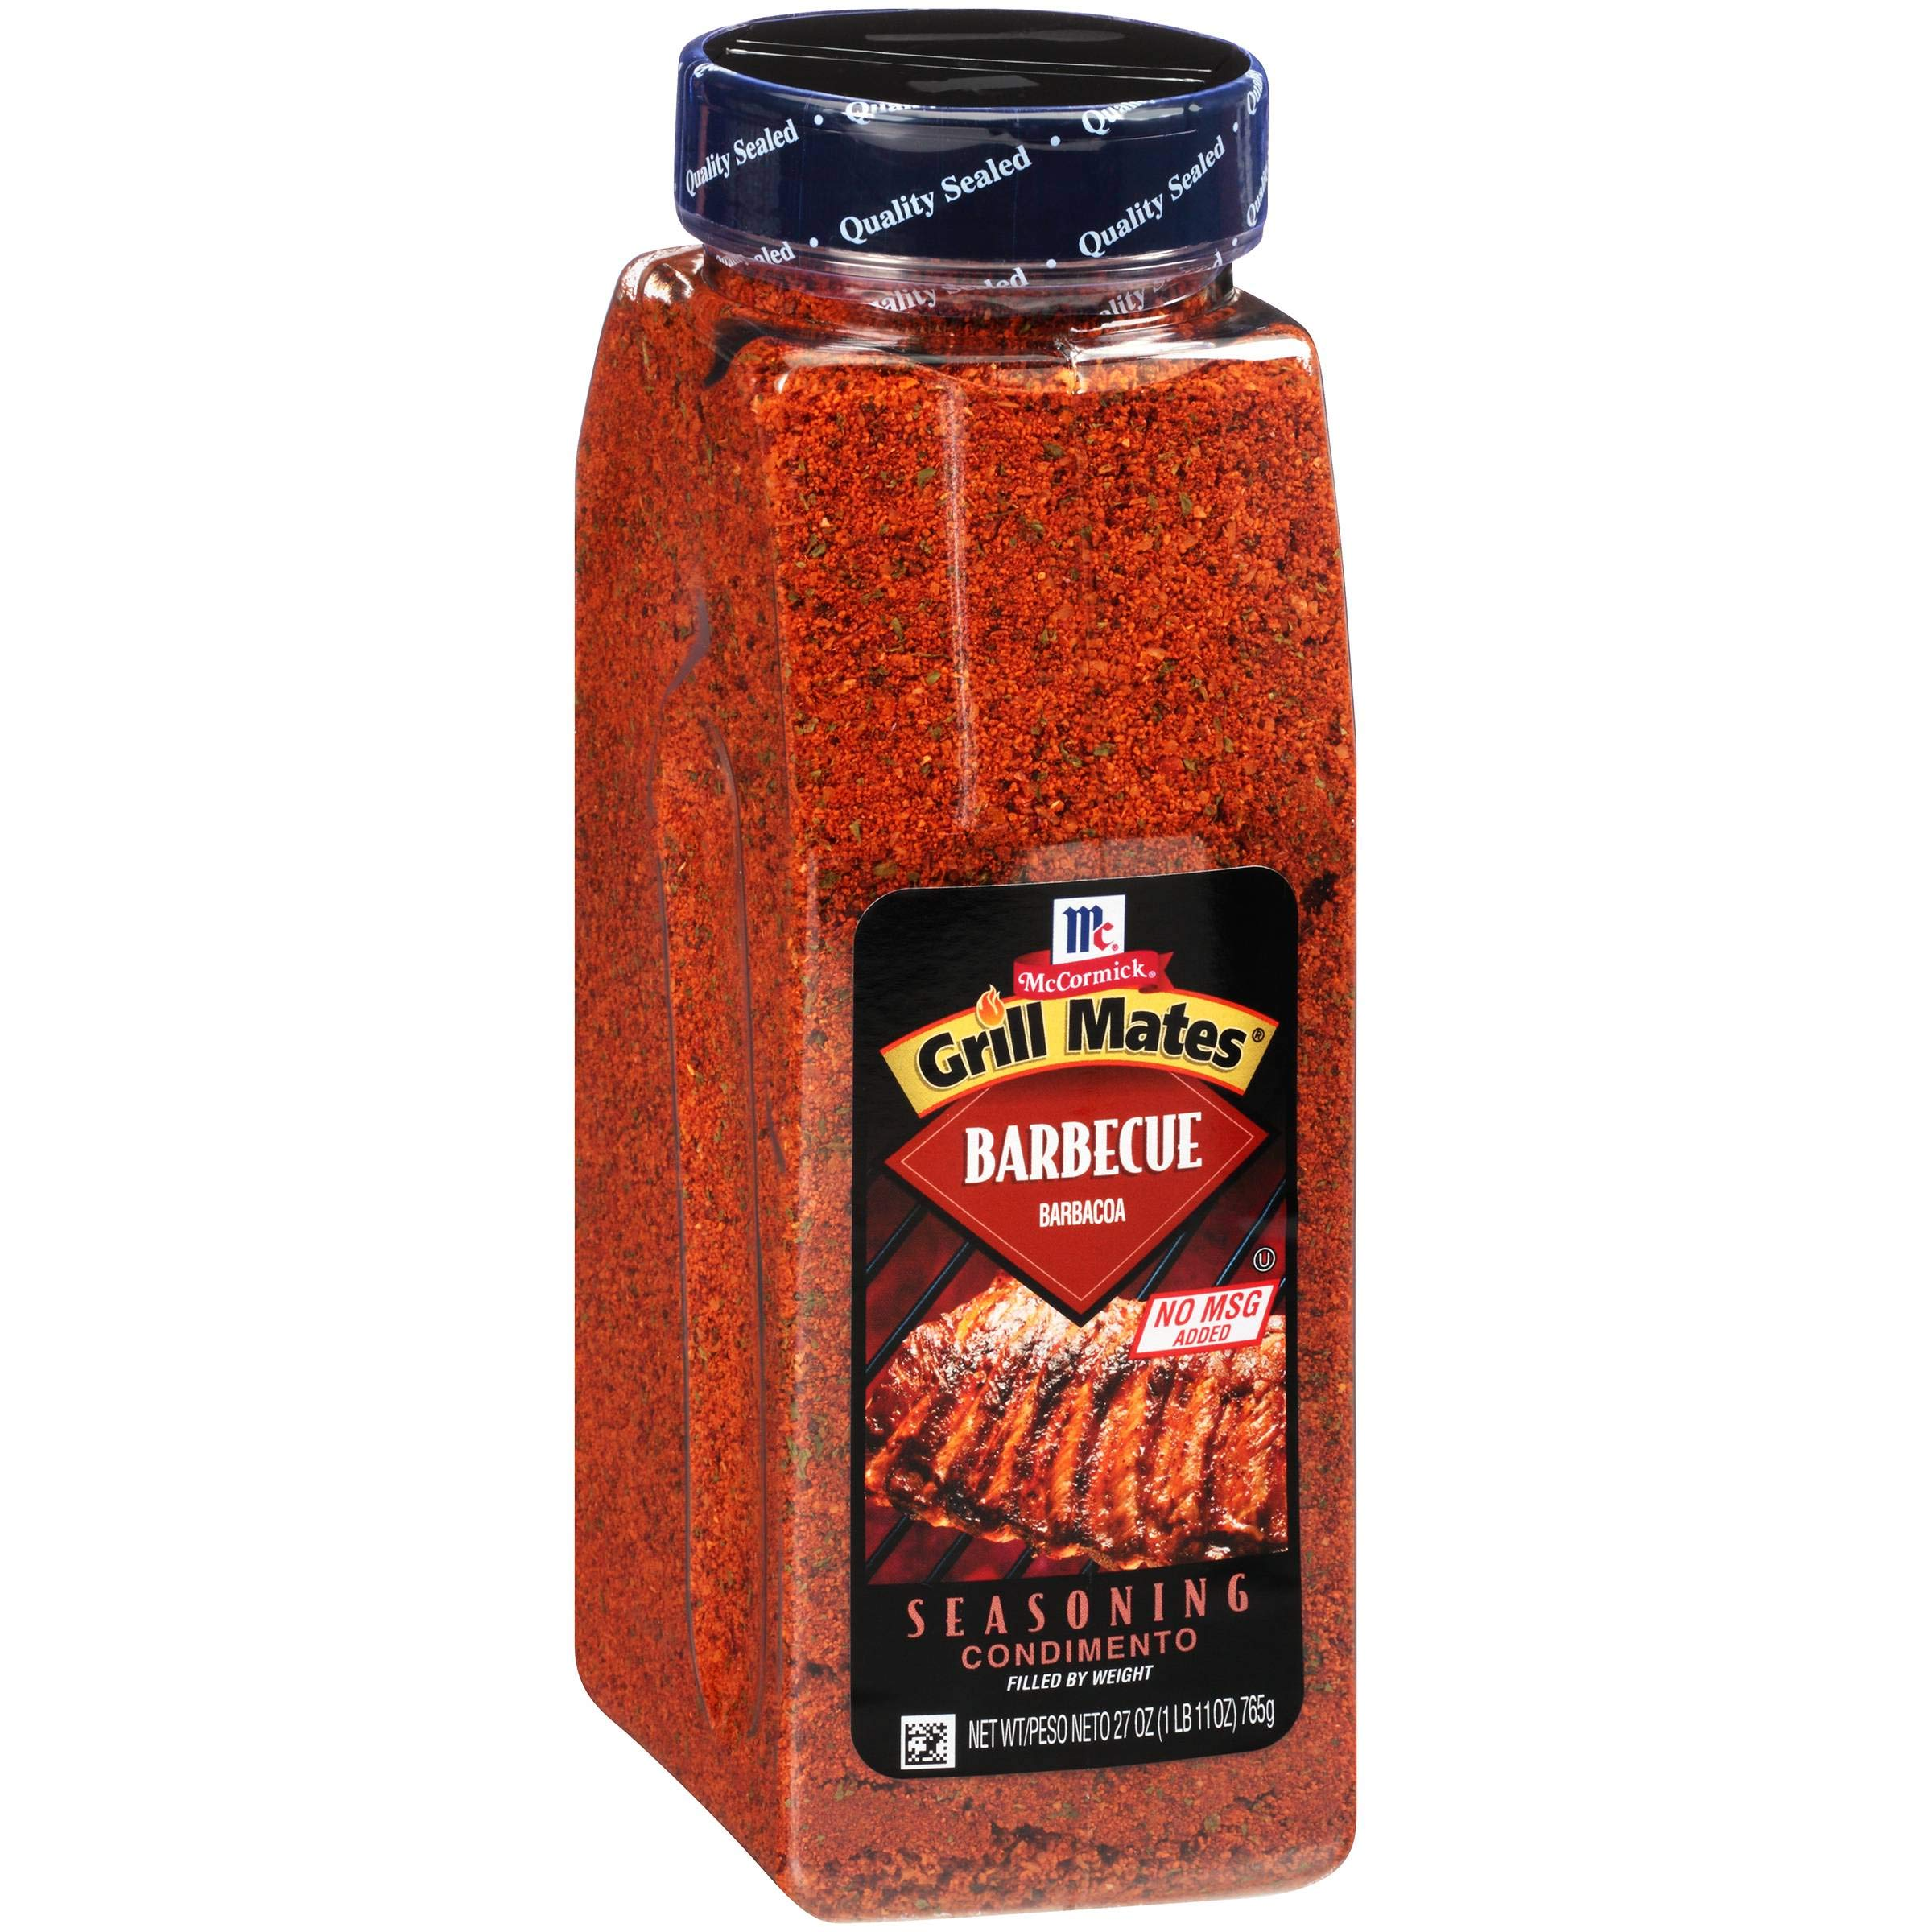 McCormick Grill Mates Barbecue Seasoning, 27 Ounce - 6 per case.